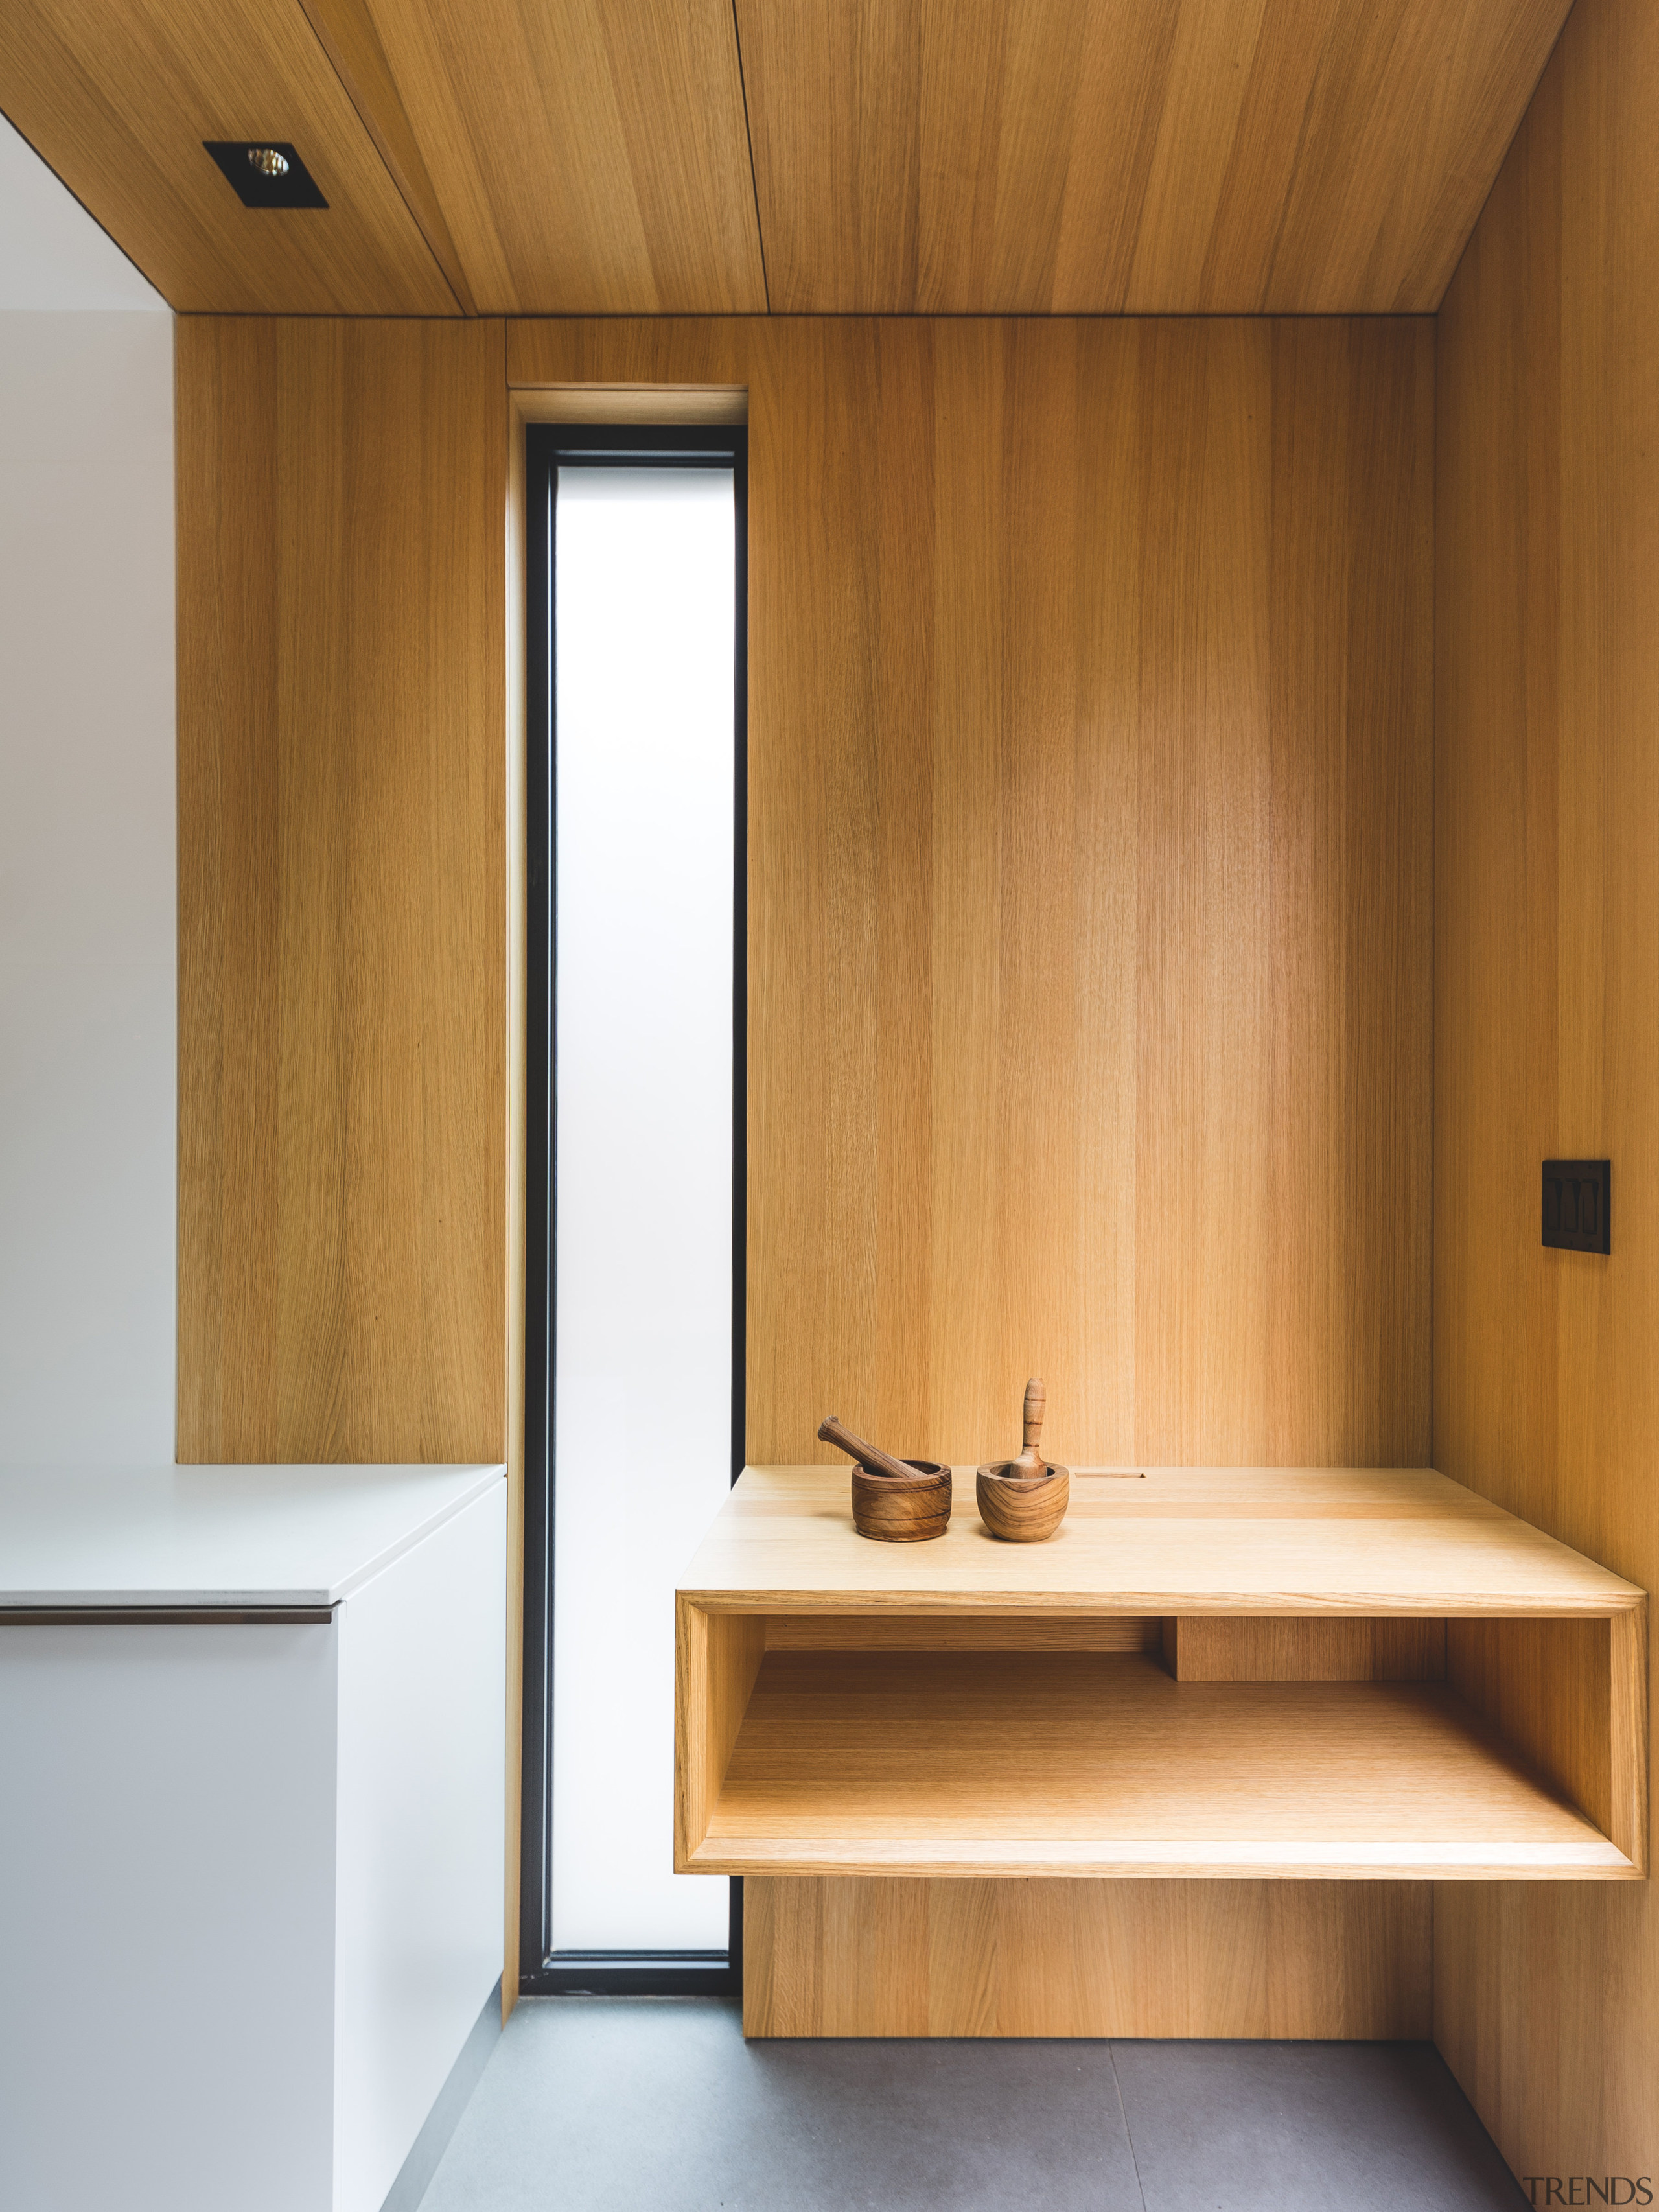 Finely detailed  simple oak shelving on an architecture, ceiling, floor, furniture, hardwood, interior design, plywood, product design, wall, wood, brown, white